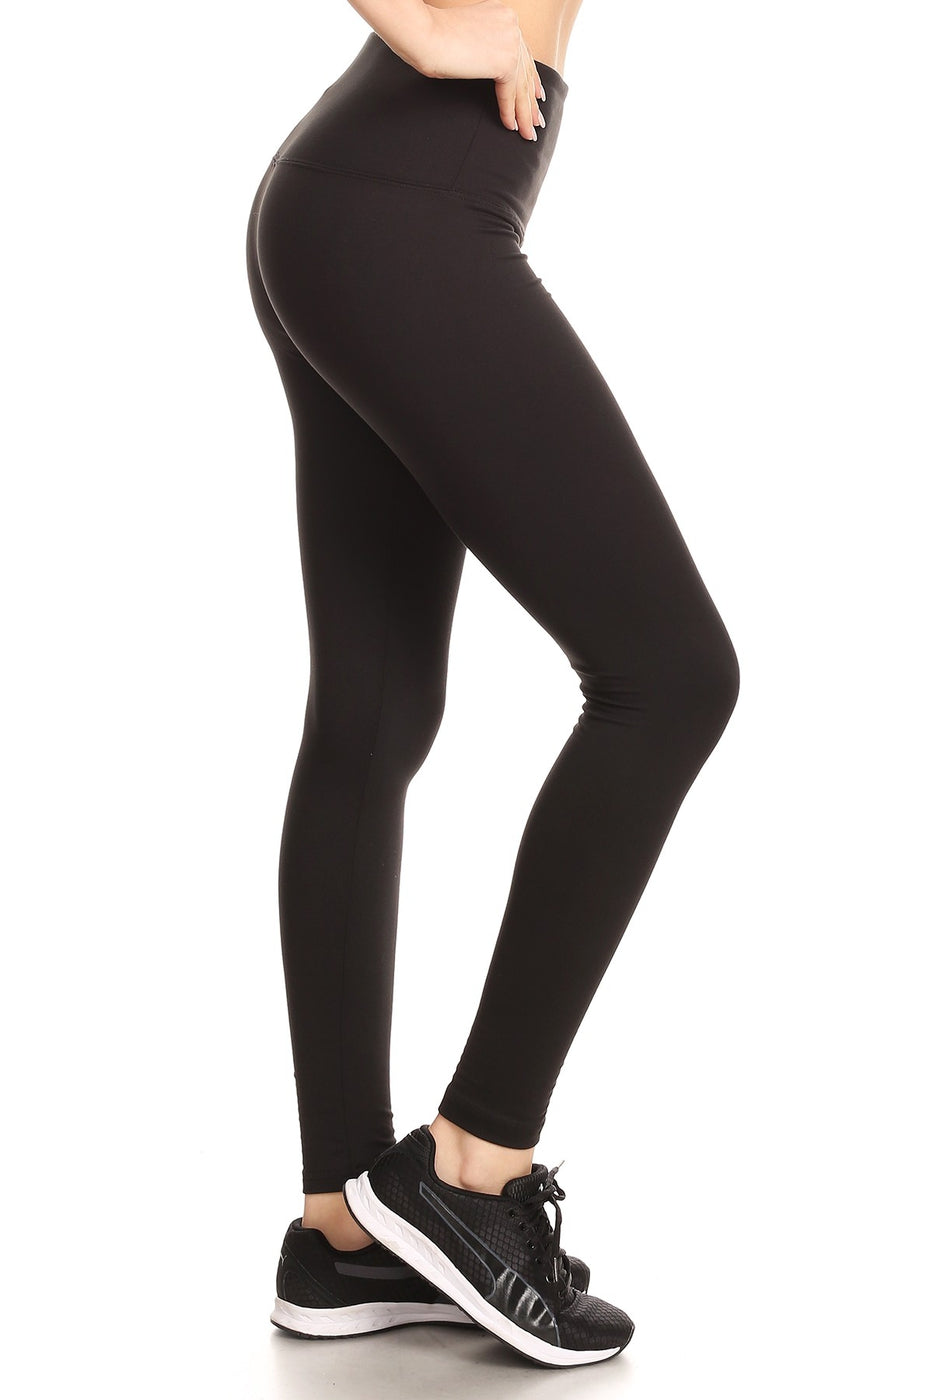 Black Leggings - Inward Beauty Boutique